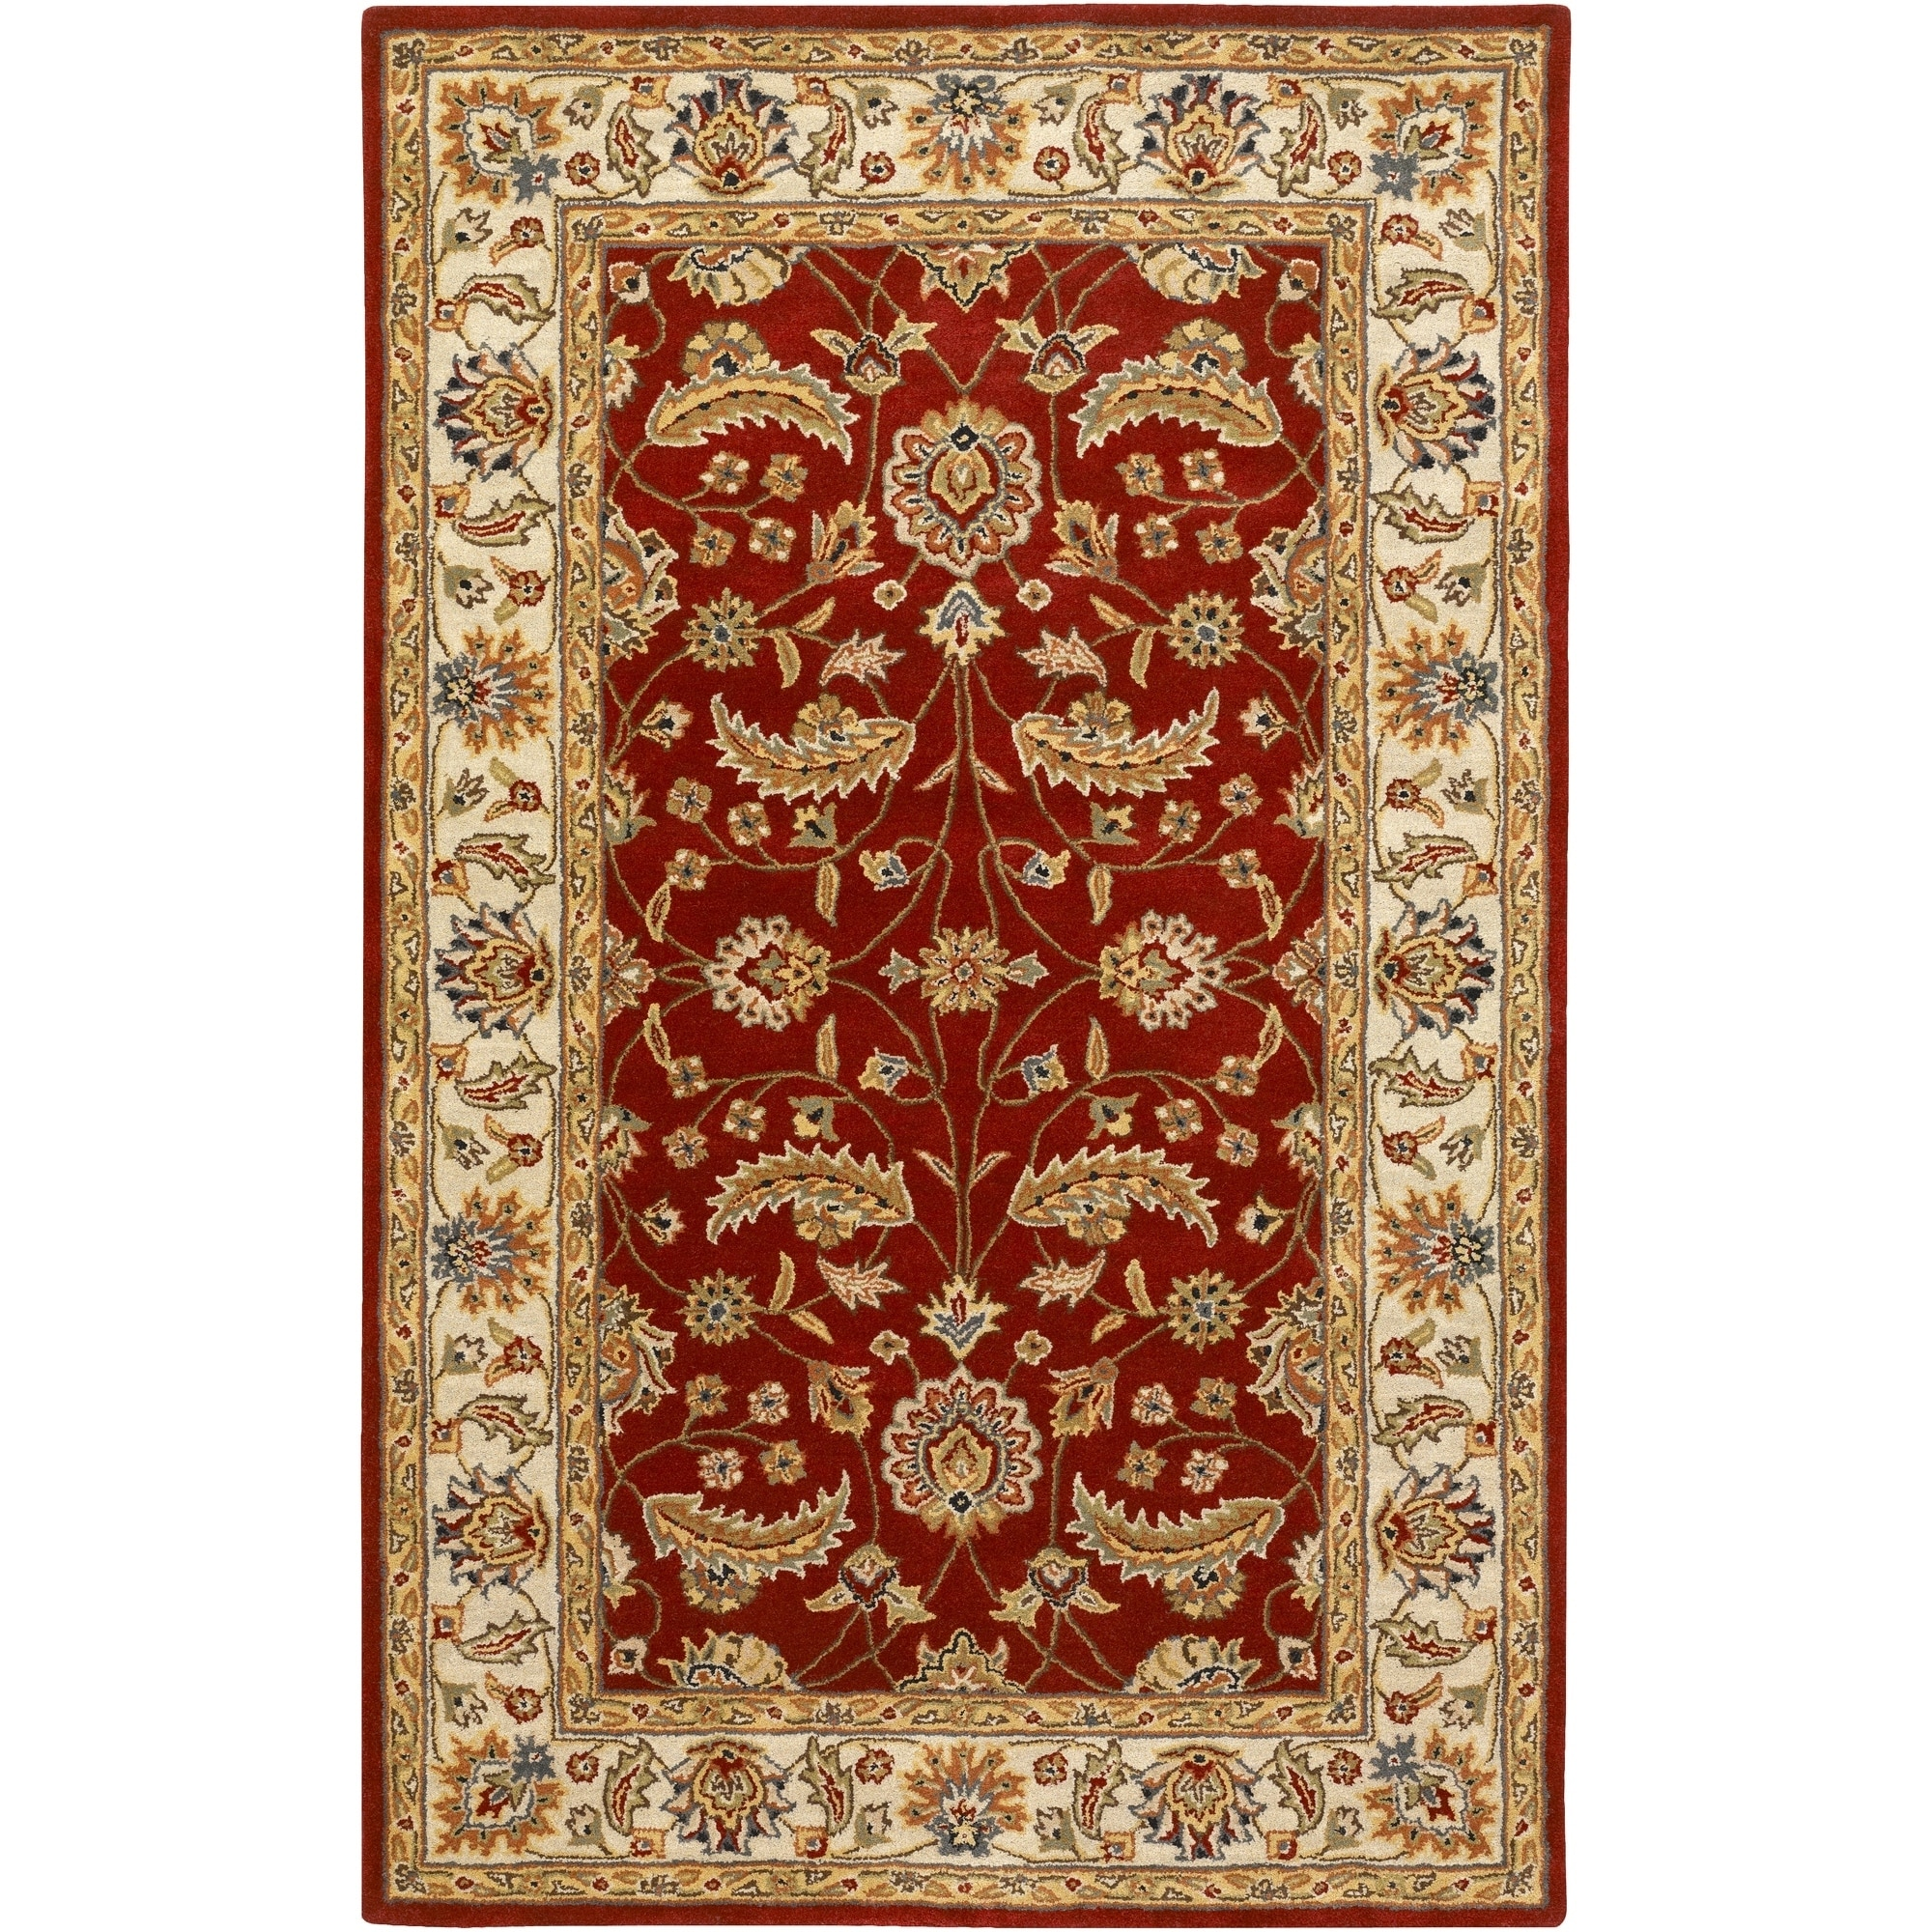 Sony Hand-tufted Kerry Wool Rug (7'6 x 9'6), Red, Size 8'...